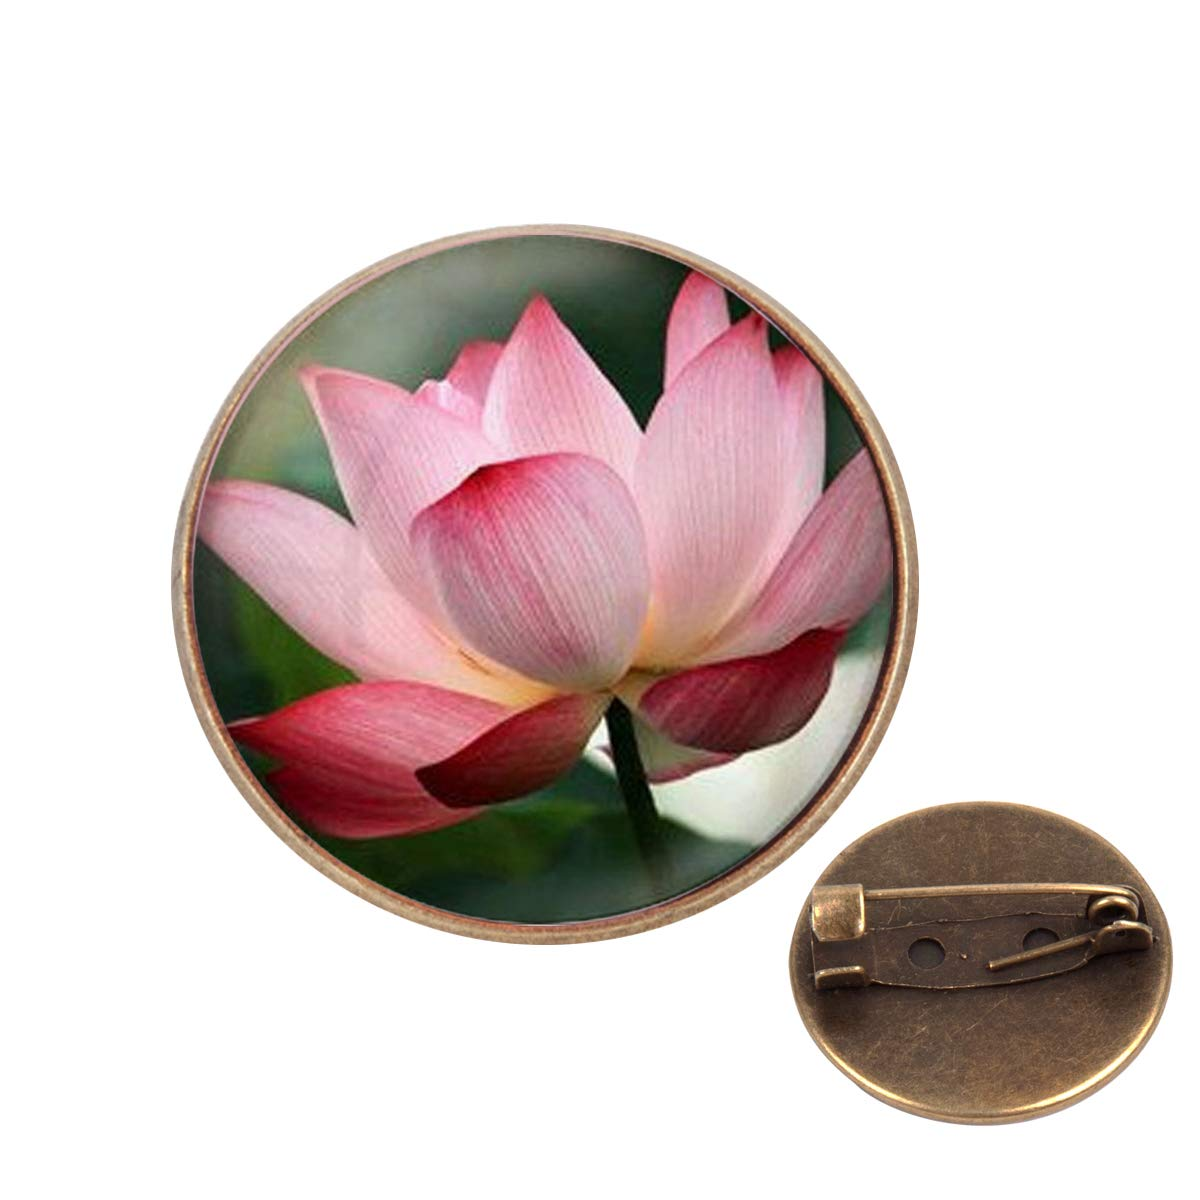 Pinback Buttons Badges Pins Summer Art Lotus Lapel Pin Brooch Clip Trendy Accessory Jacket T-Shirt Bag Hat Shoe